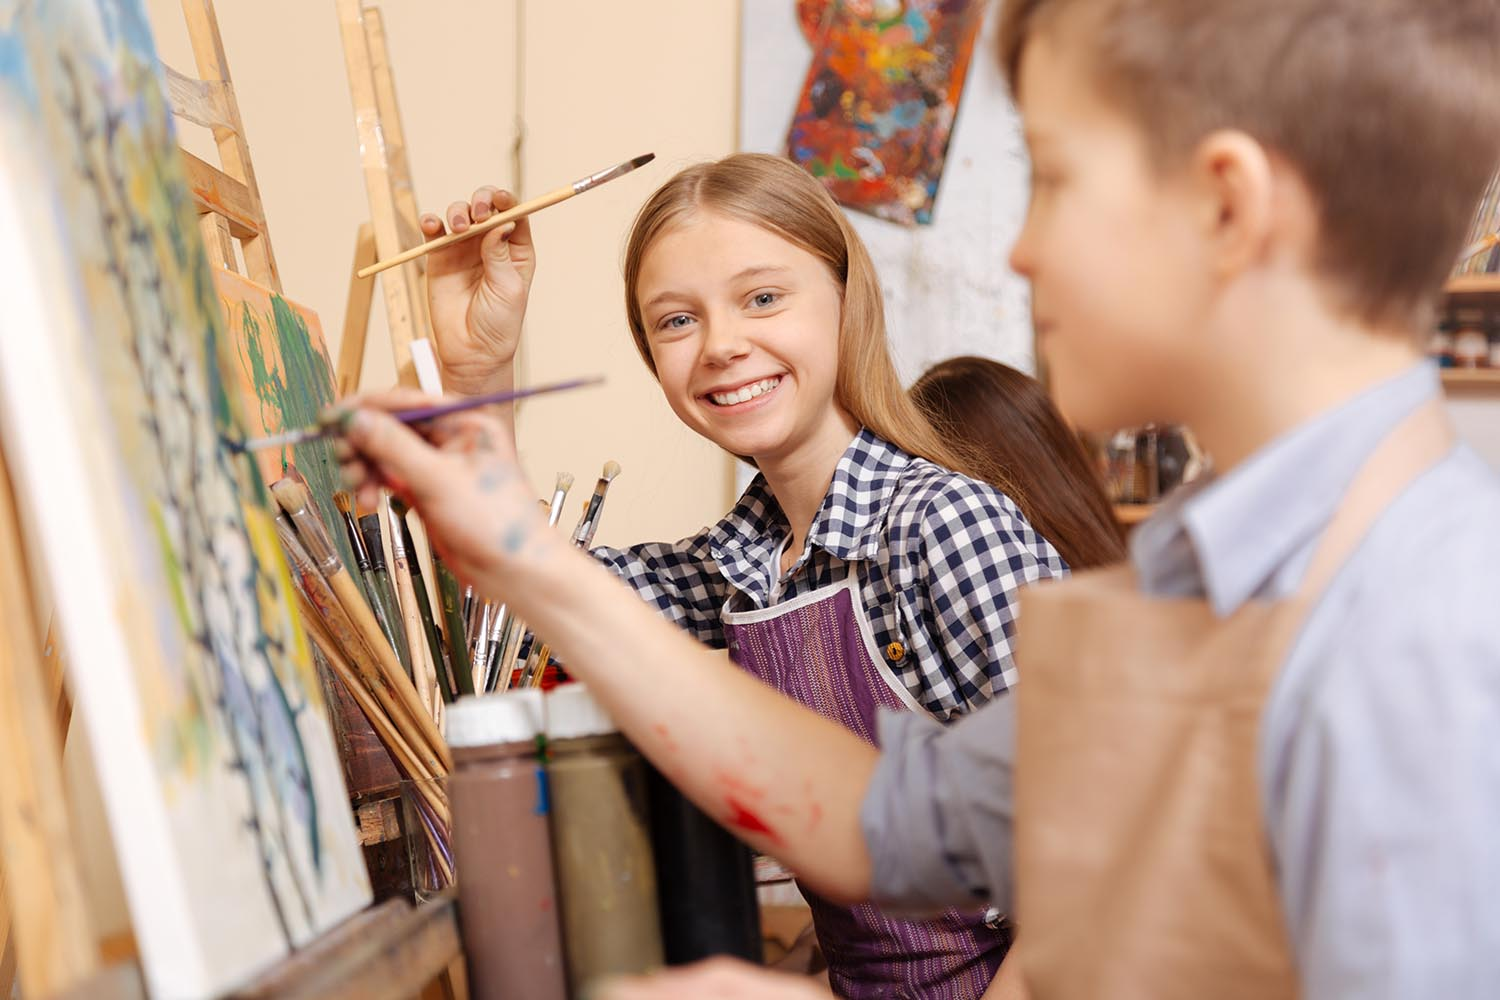 Kids paint in an art class